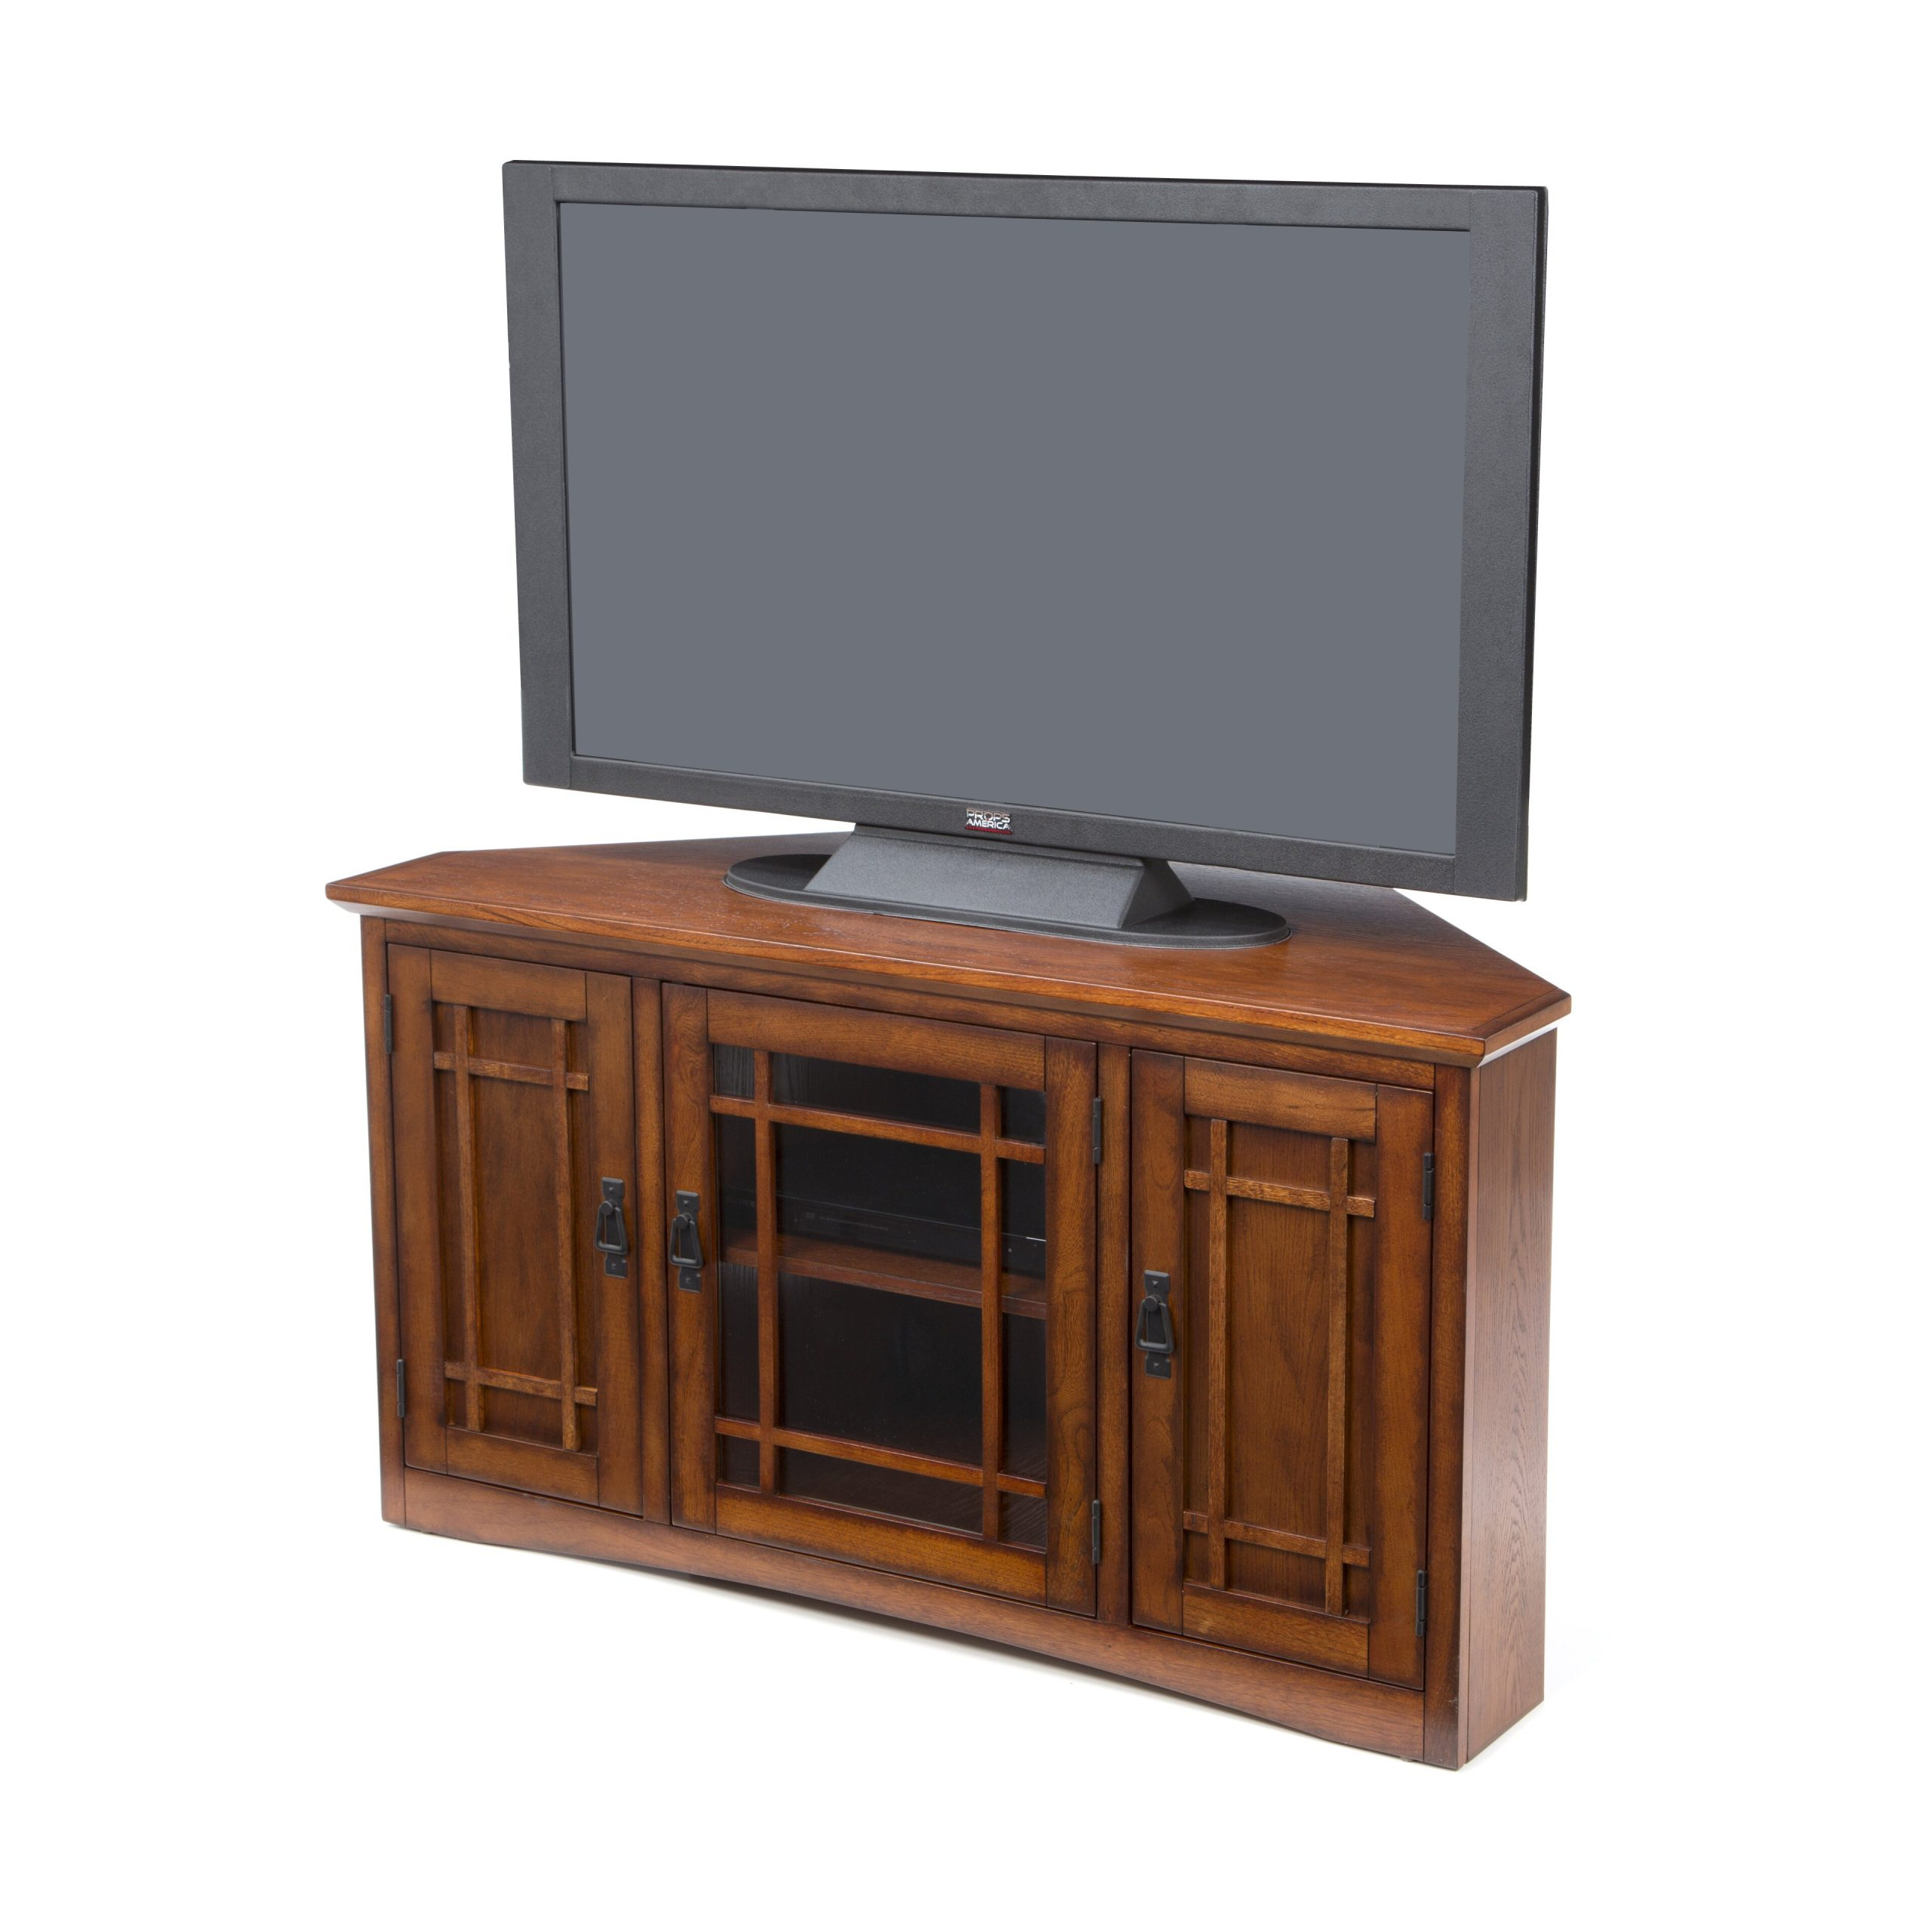 Charlton Home Stodeley Corner Tv Stand & Reviews   Wayfair With Regard To Low Corner Tv Stands (View 12 of 15)